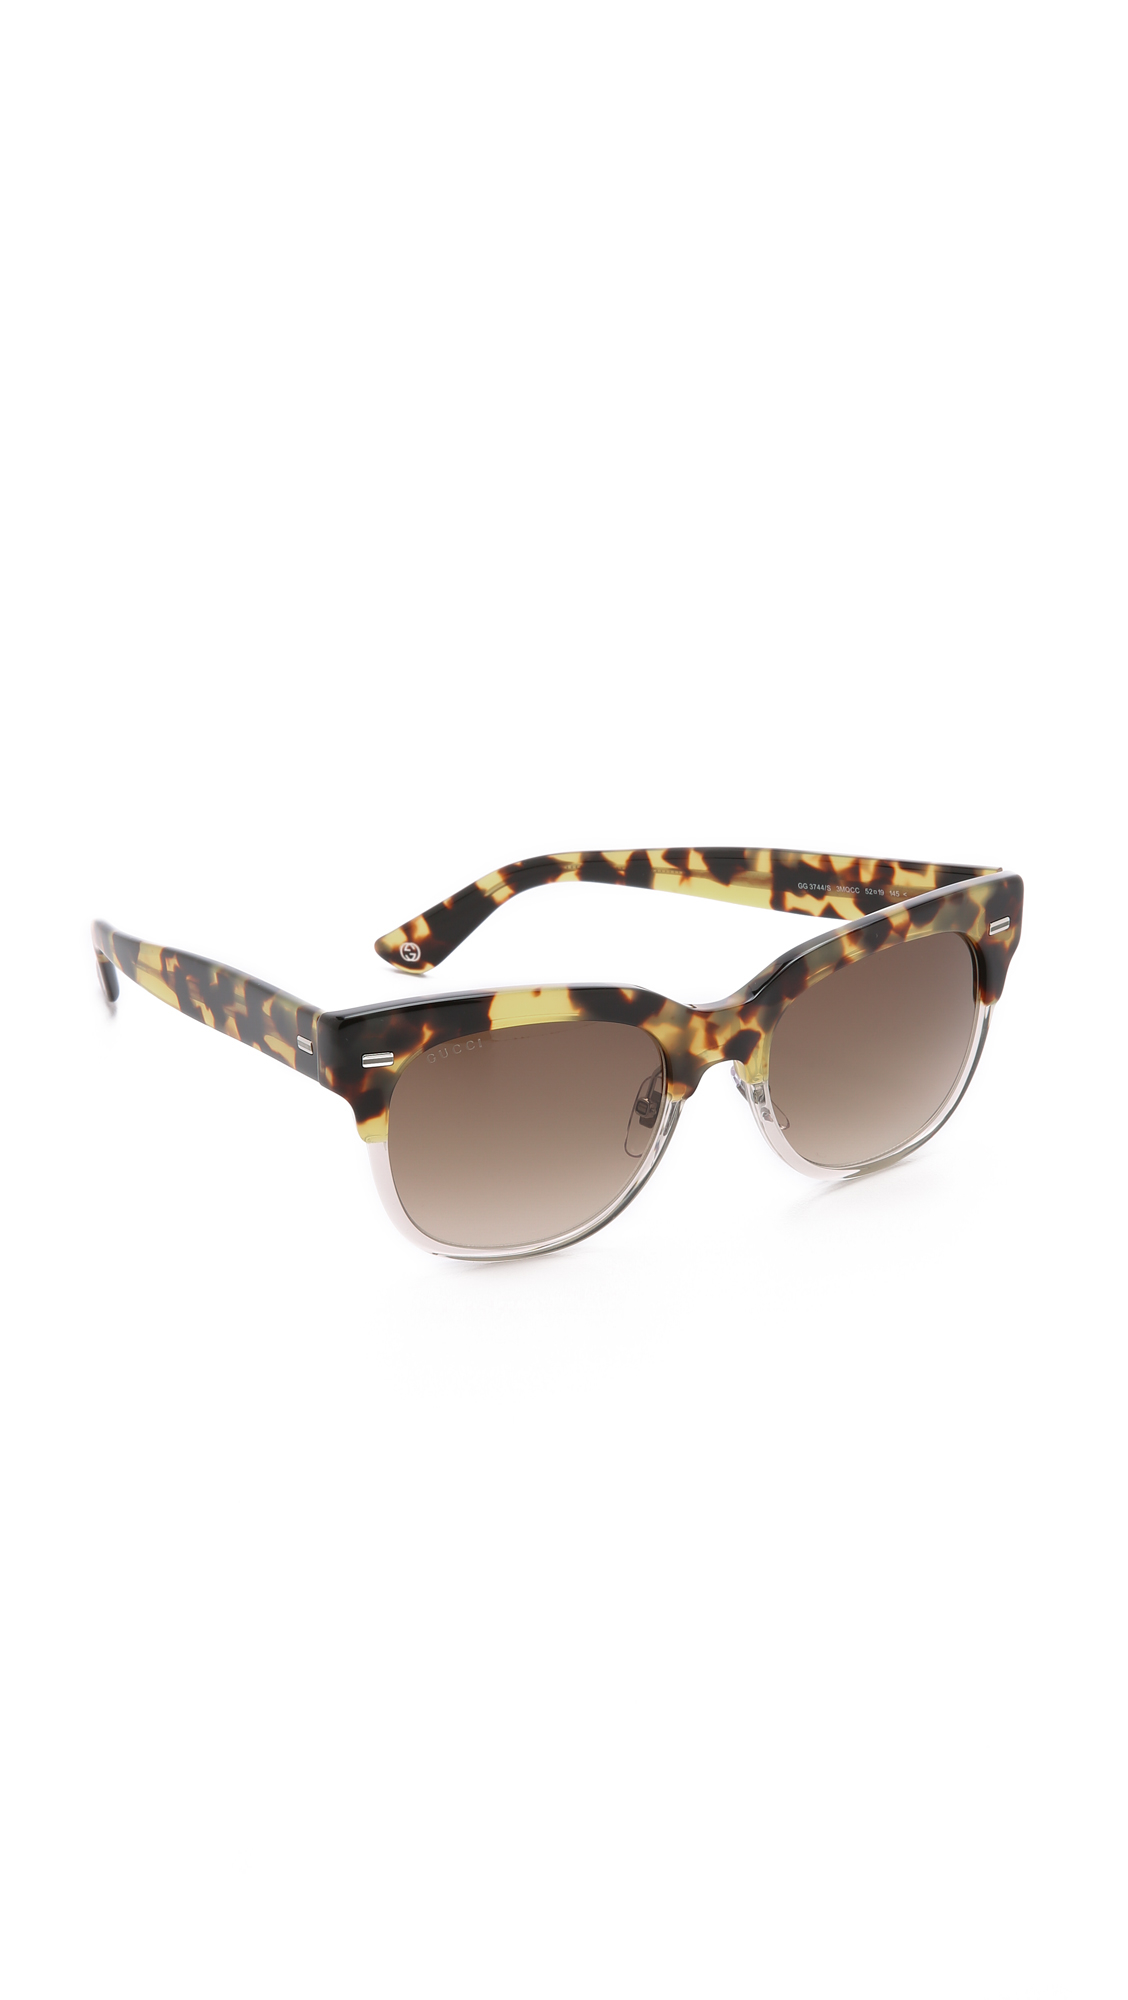 5250d913a10c Gucci Spotted Top Sunglasses in Brown - Lyst